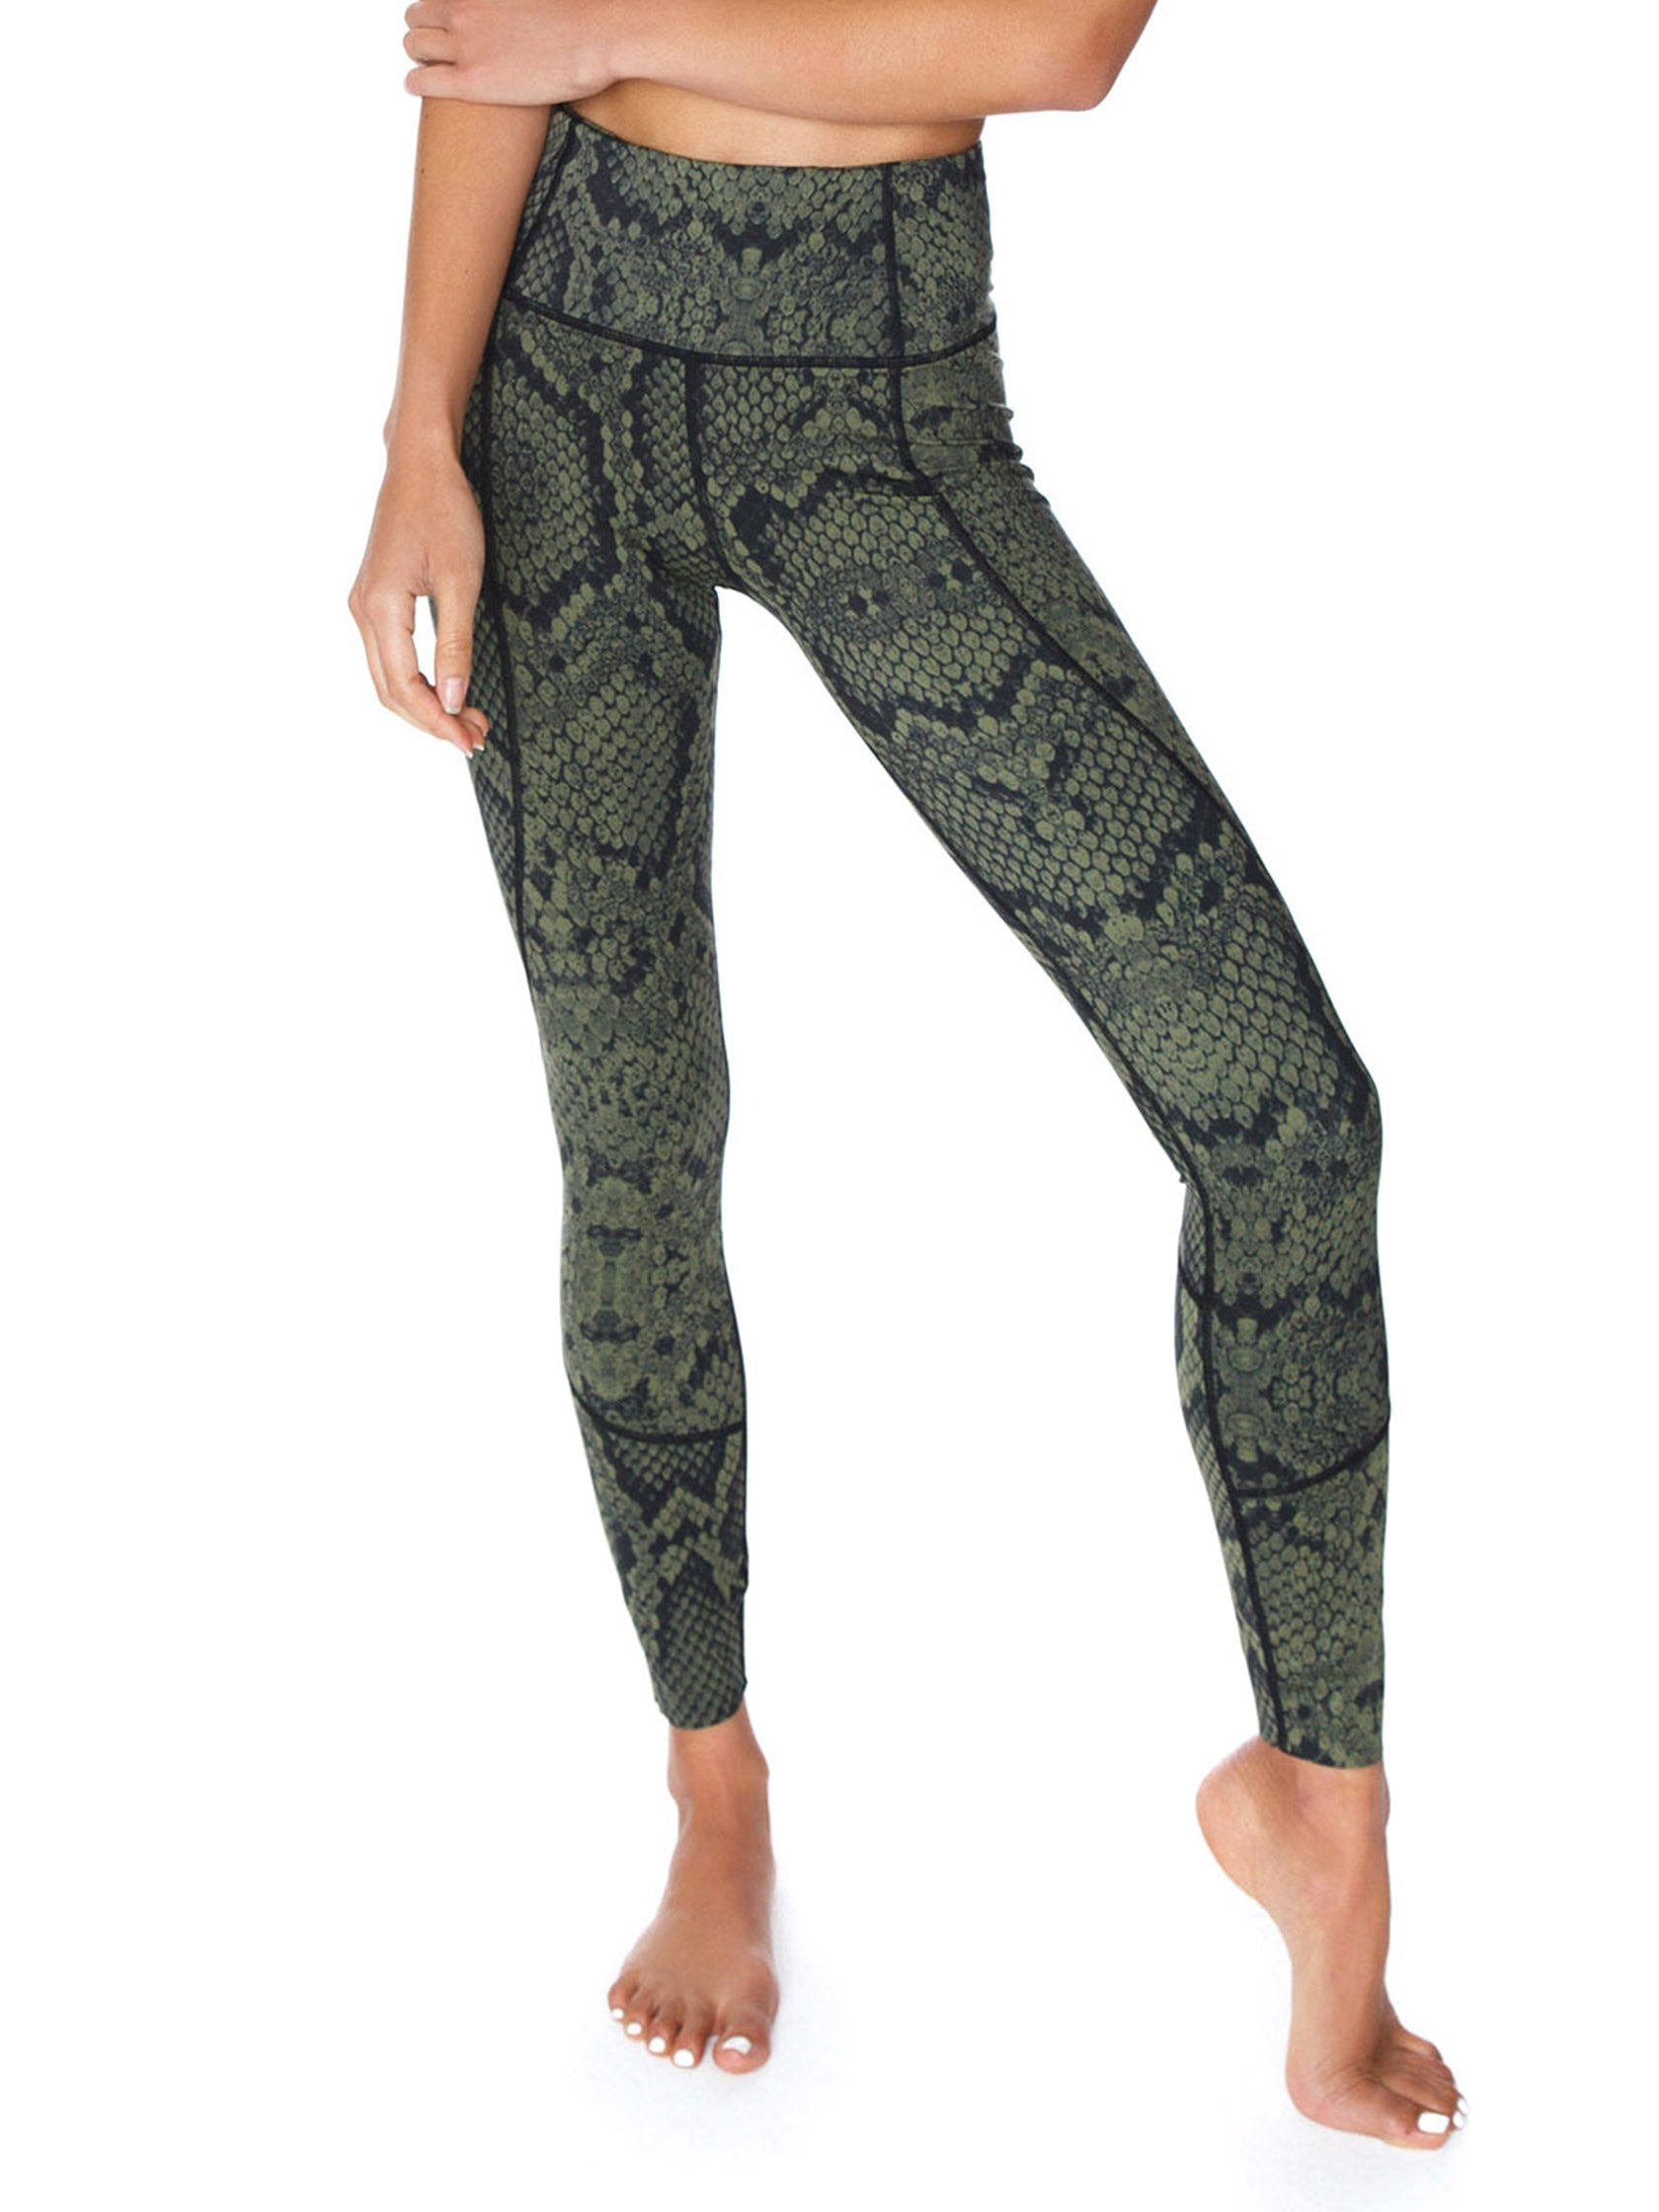 b26e2eda20 Girl outfit in a leggings rental from VARLEY called Bedford Tight